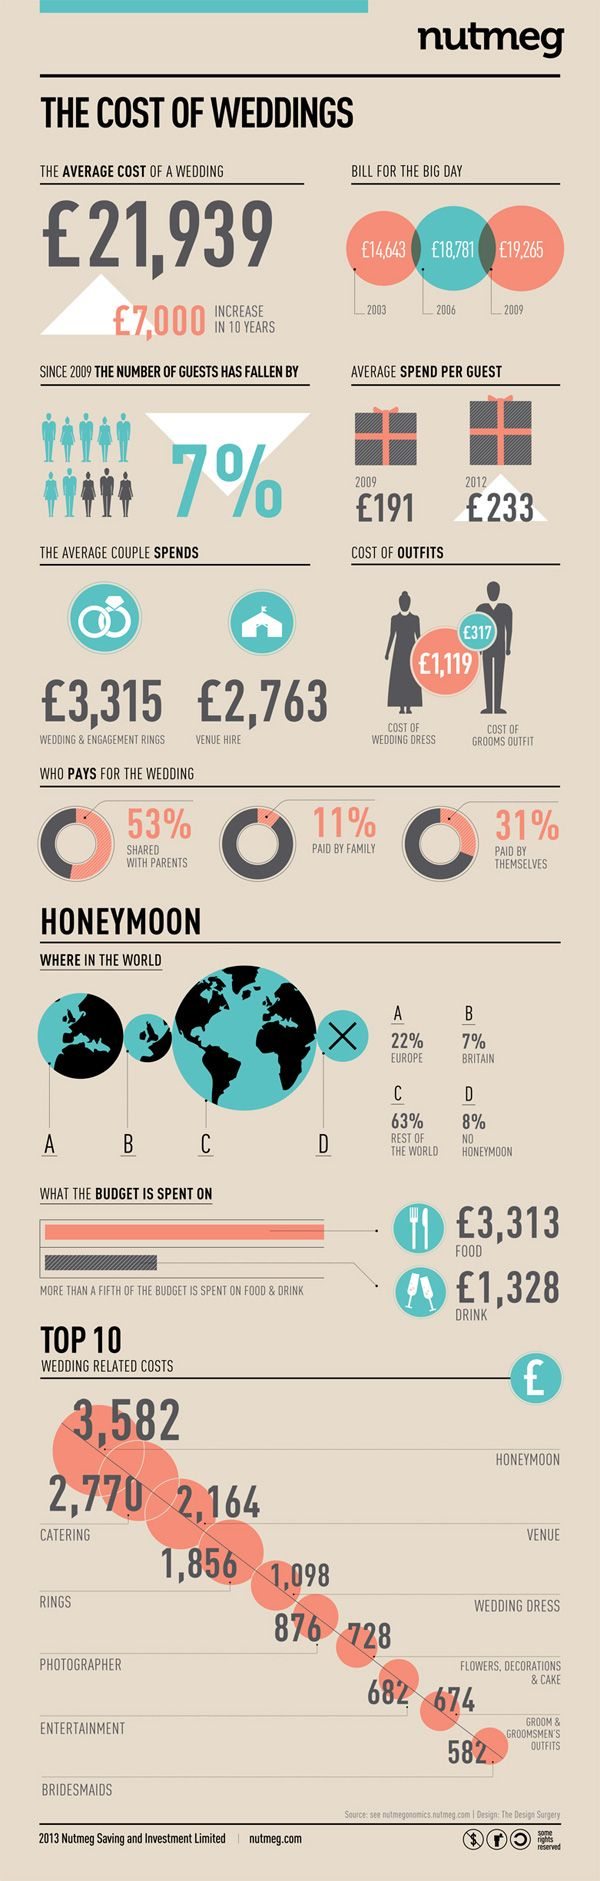 Average Cost Of Wedding Breakdown Uk | deweddingjpg.com